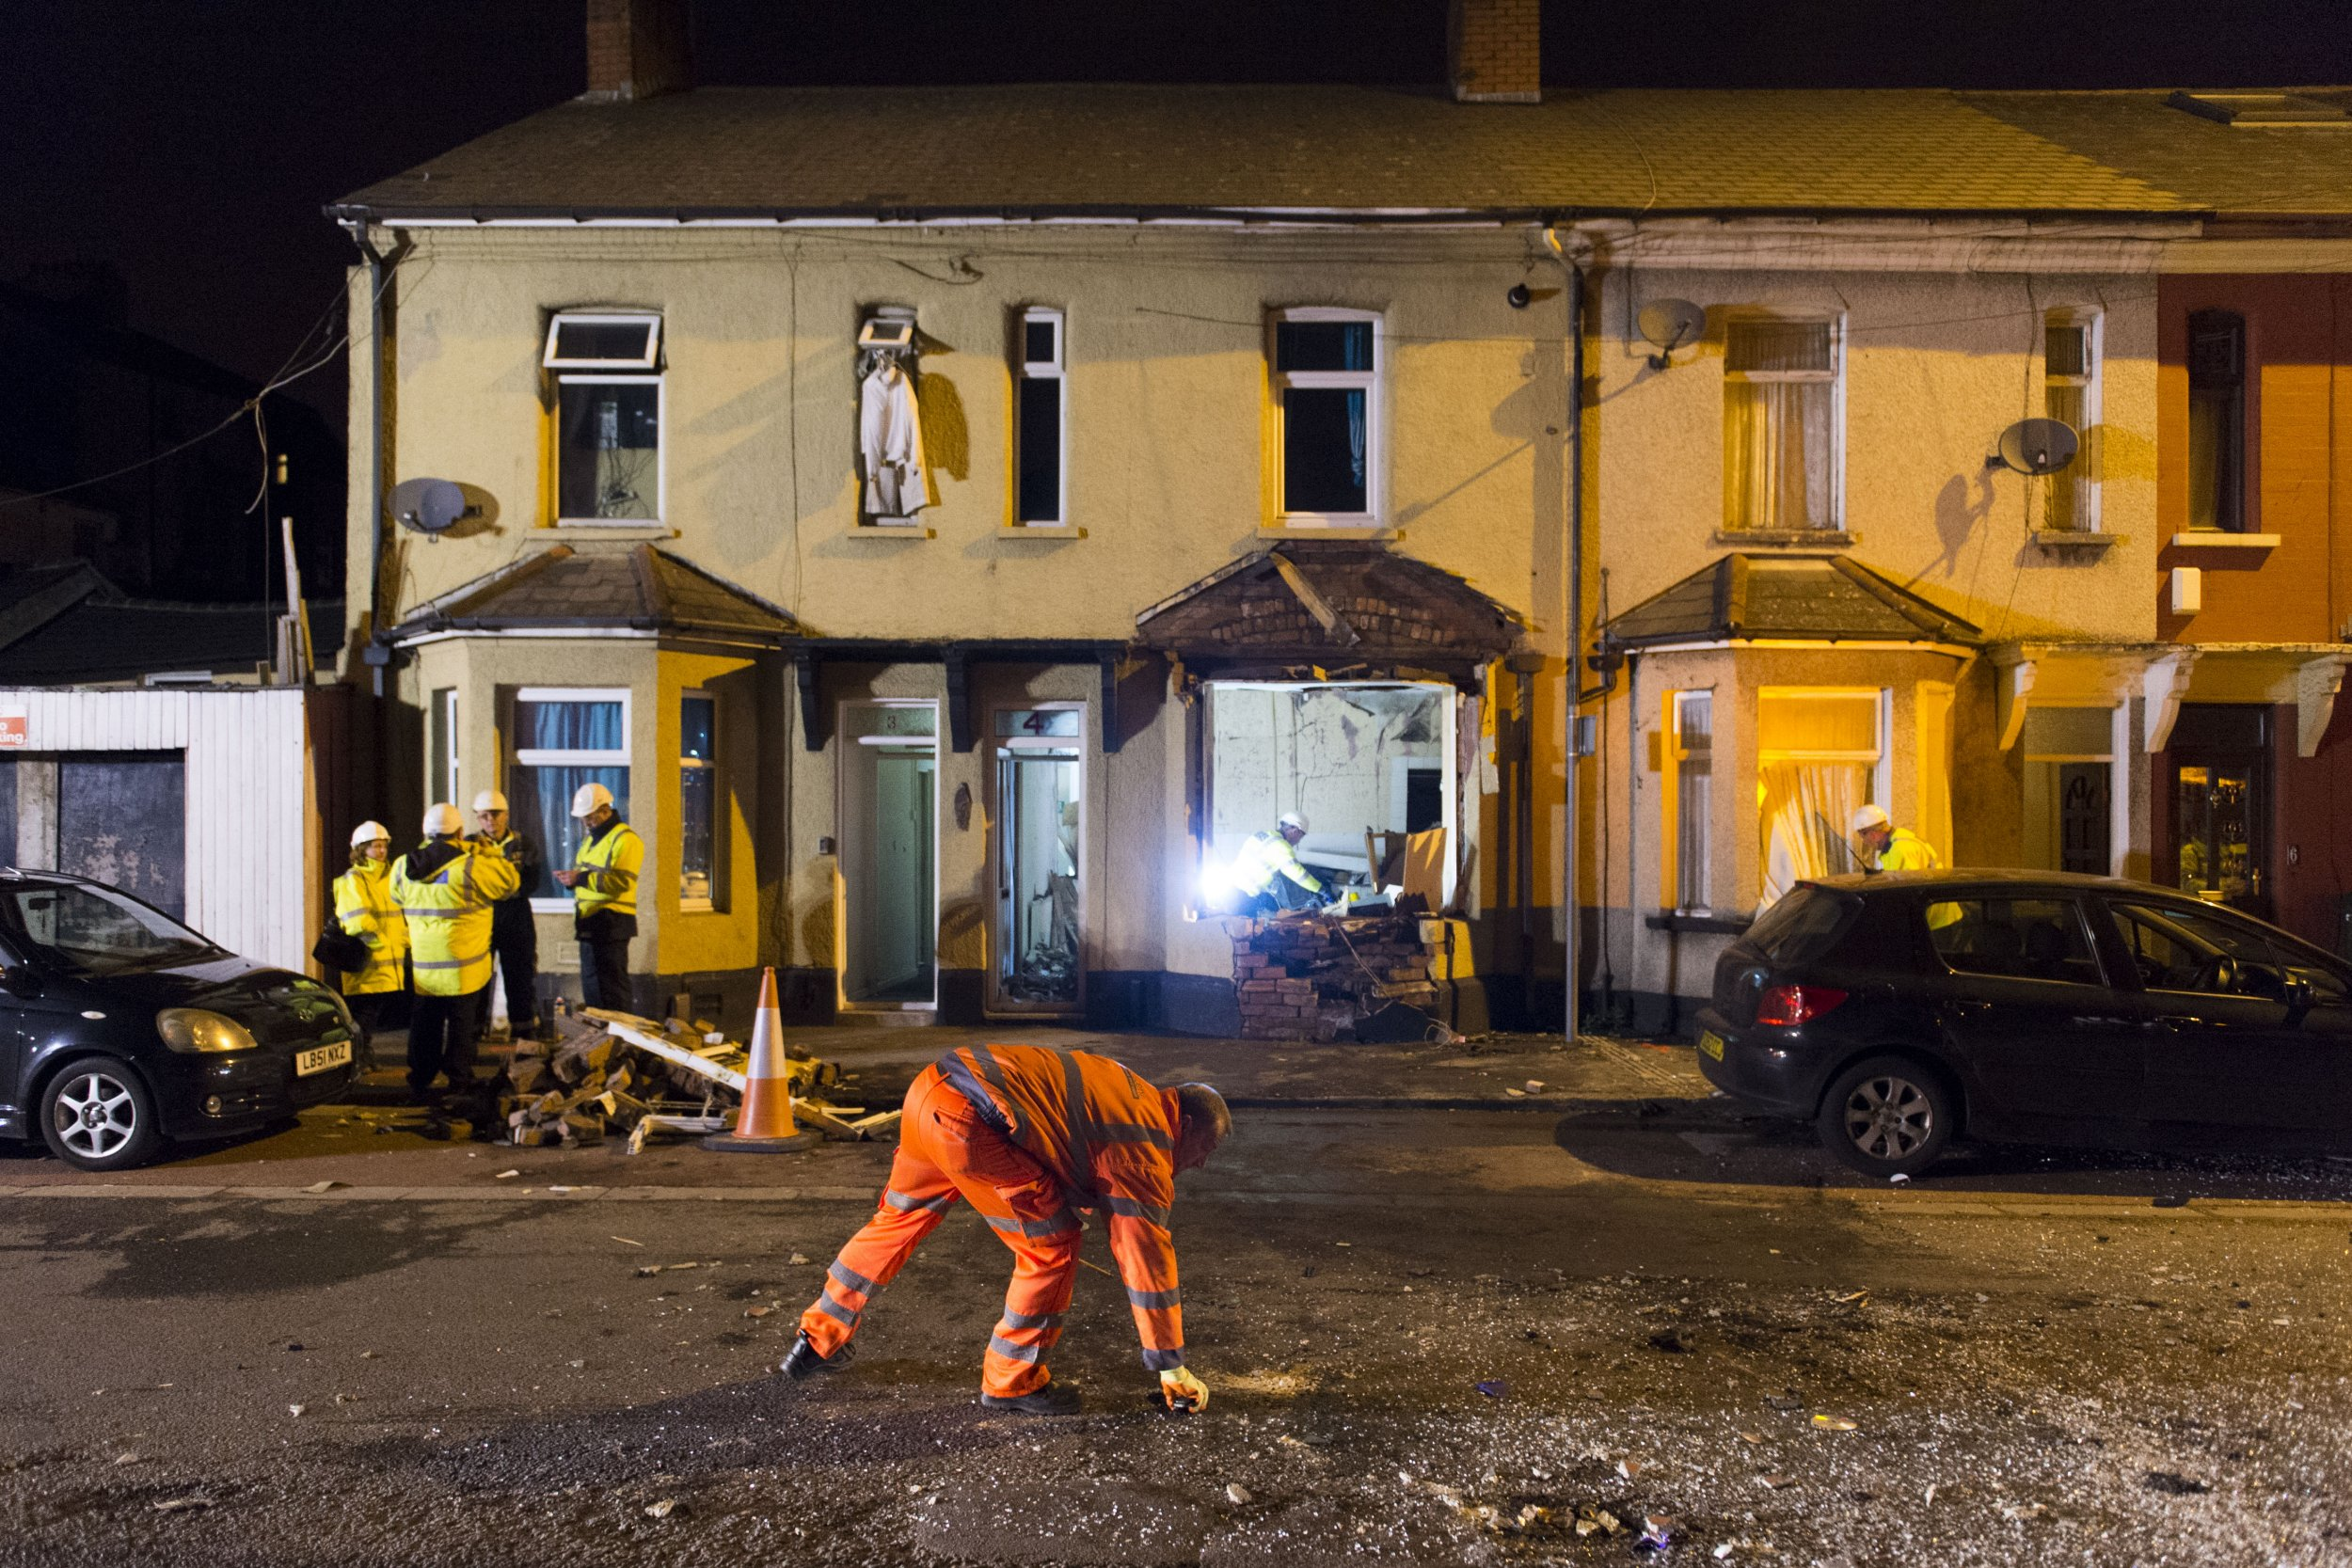 """An arsonist has been jailed for four-and-a-half years - for blowing up his own home during a birthday drinking session. William Flindell, 50, caused £200,000 of damage and lost the use of his hands after filling his flat with gas and setting it off with a lighter. Cardiff Crown Court heard the front of the house in Newport, Gwent, was """"completely blown apart"""" and showered the street in bricks and debris. Witness heard a man shouting """"get out, get out"""" before the explosion. Picture by - Matthew Horwood WALES NEWS SERVICE"""